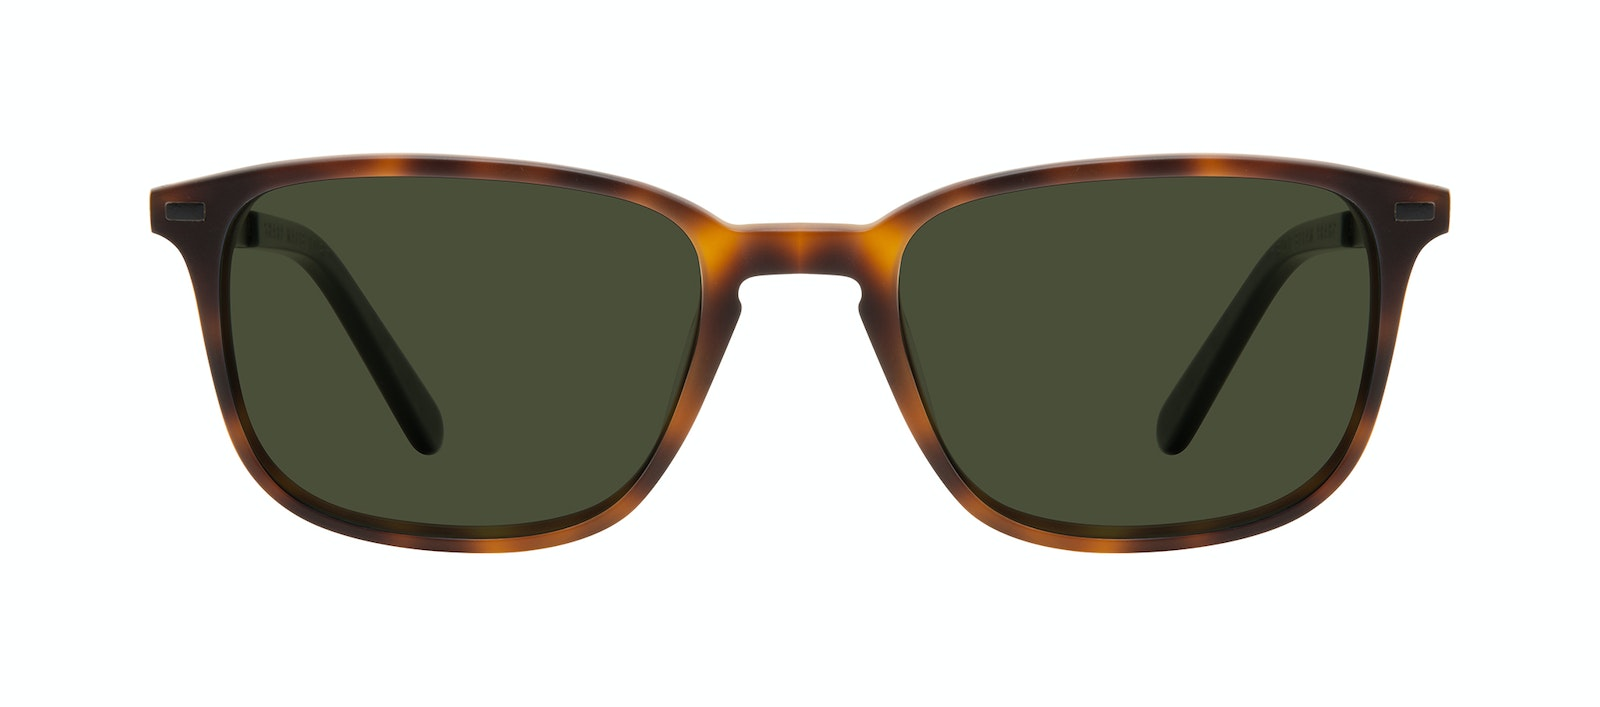 Affordable Fashion Glasses Rectangle Sunglasses Men Sharp Matte Tort Front